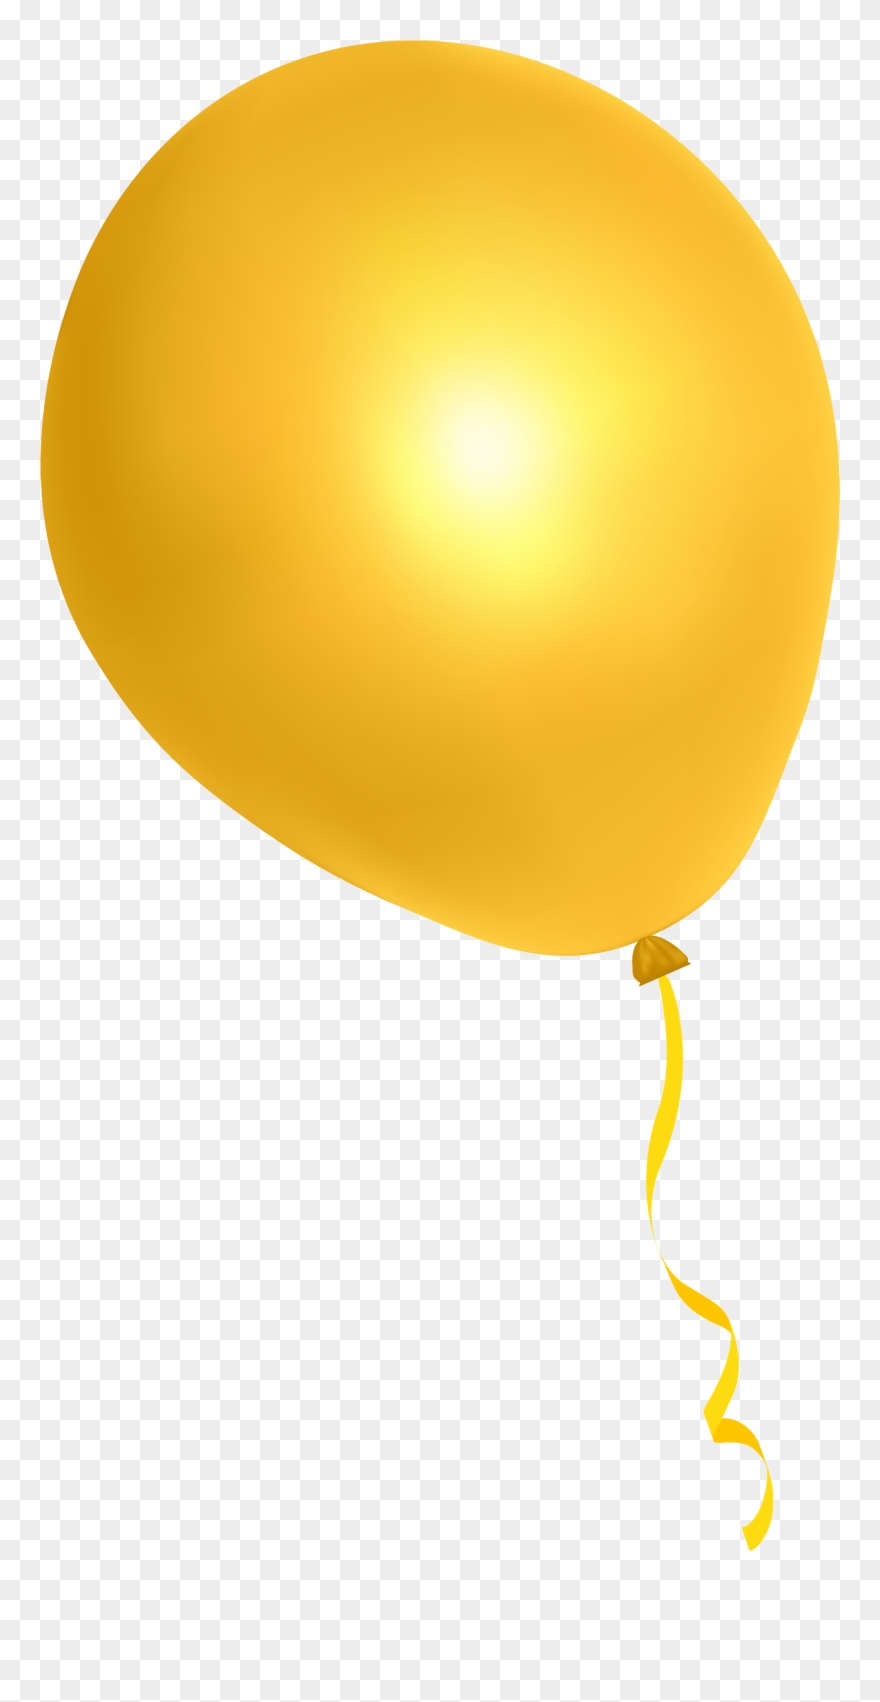 Yellow Balloons Png - Yellow Balloons Png Www Imgkid Com The Image Kid Has - Transparent ...